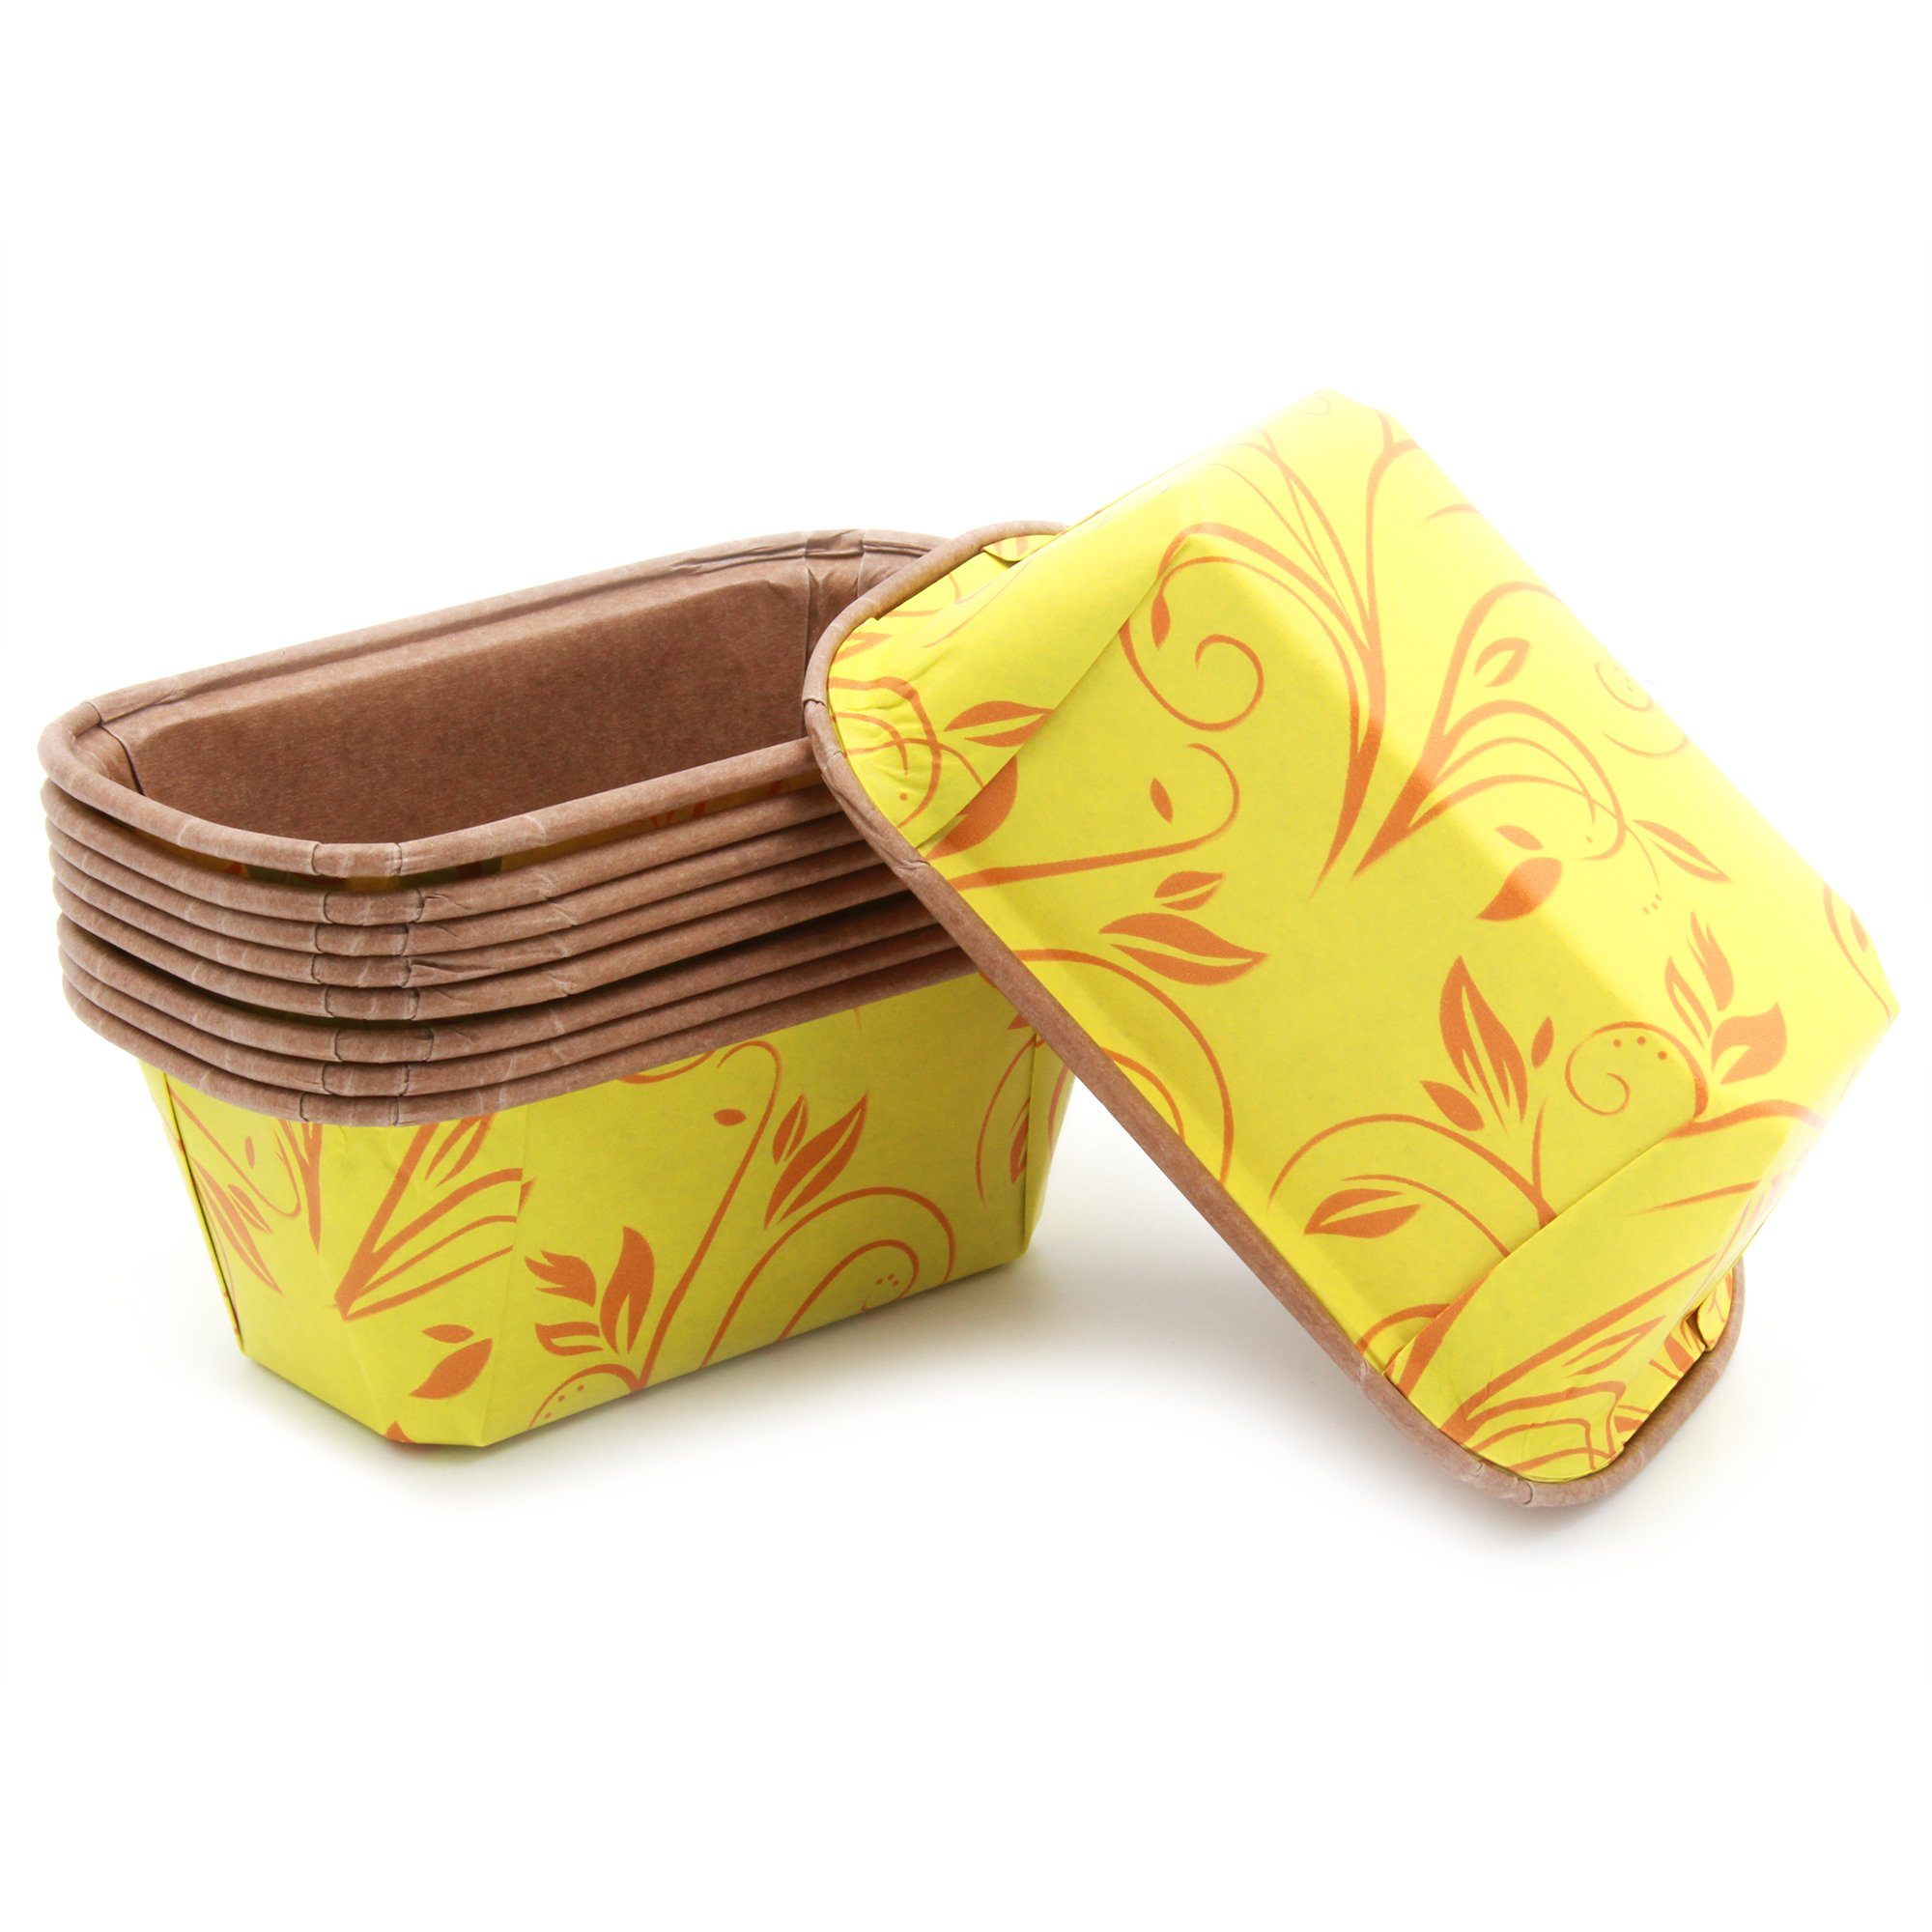 Premium Personal Mini Size Paper Baking Loaf Pan, Perfect for Chocolate Cake, Banana Bread Yellow Set of 30 - by EcoBake